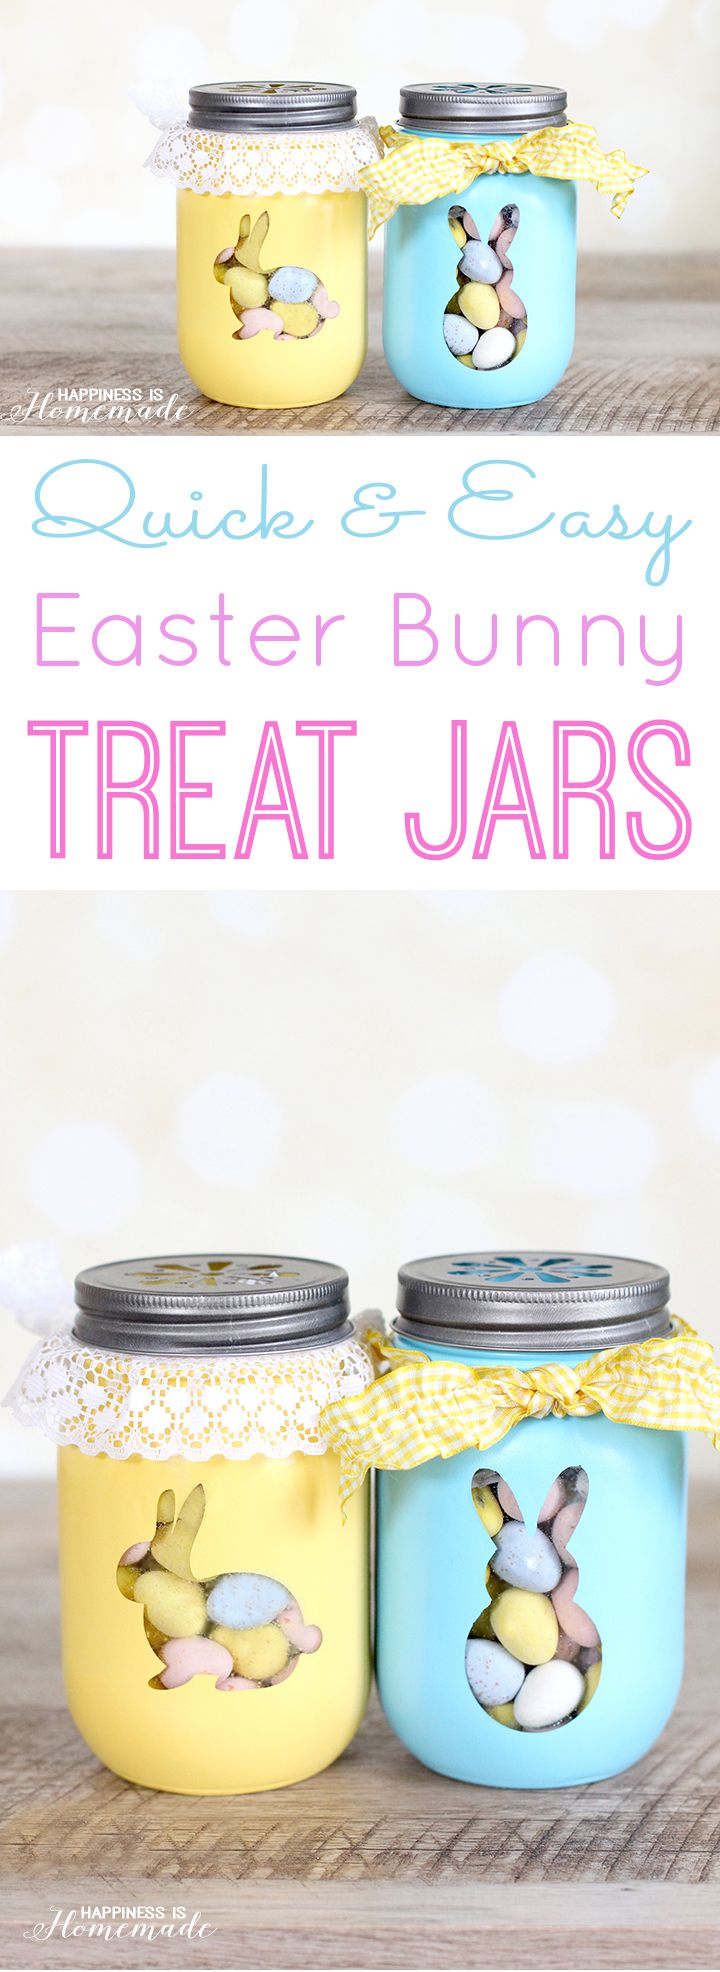 Quick easy easter bunny treat jars great gift idea for the quick easy easter bunny treat jars great gift idea for the neighbors and teachers negle Images